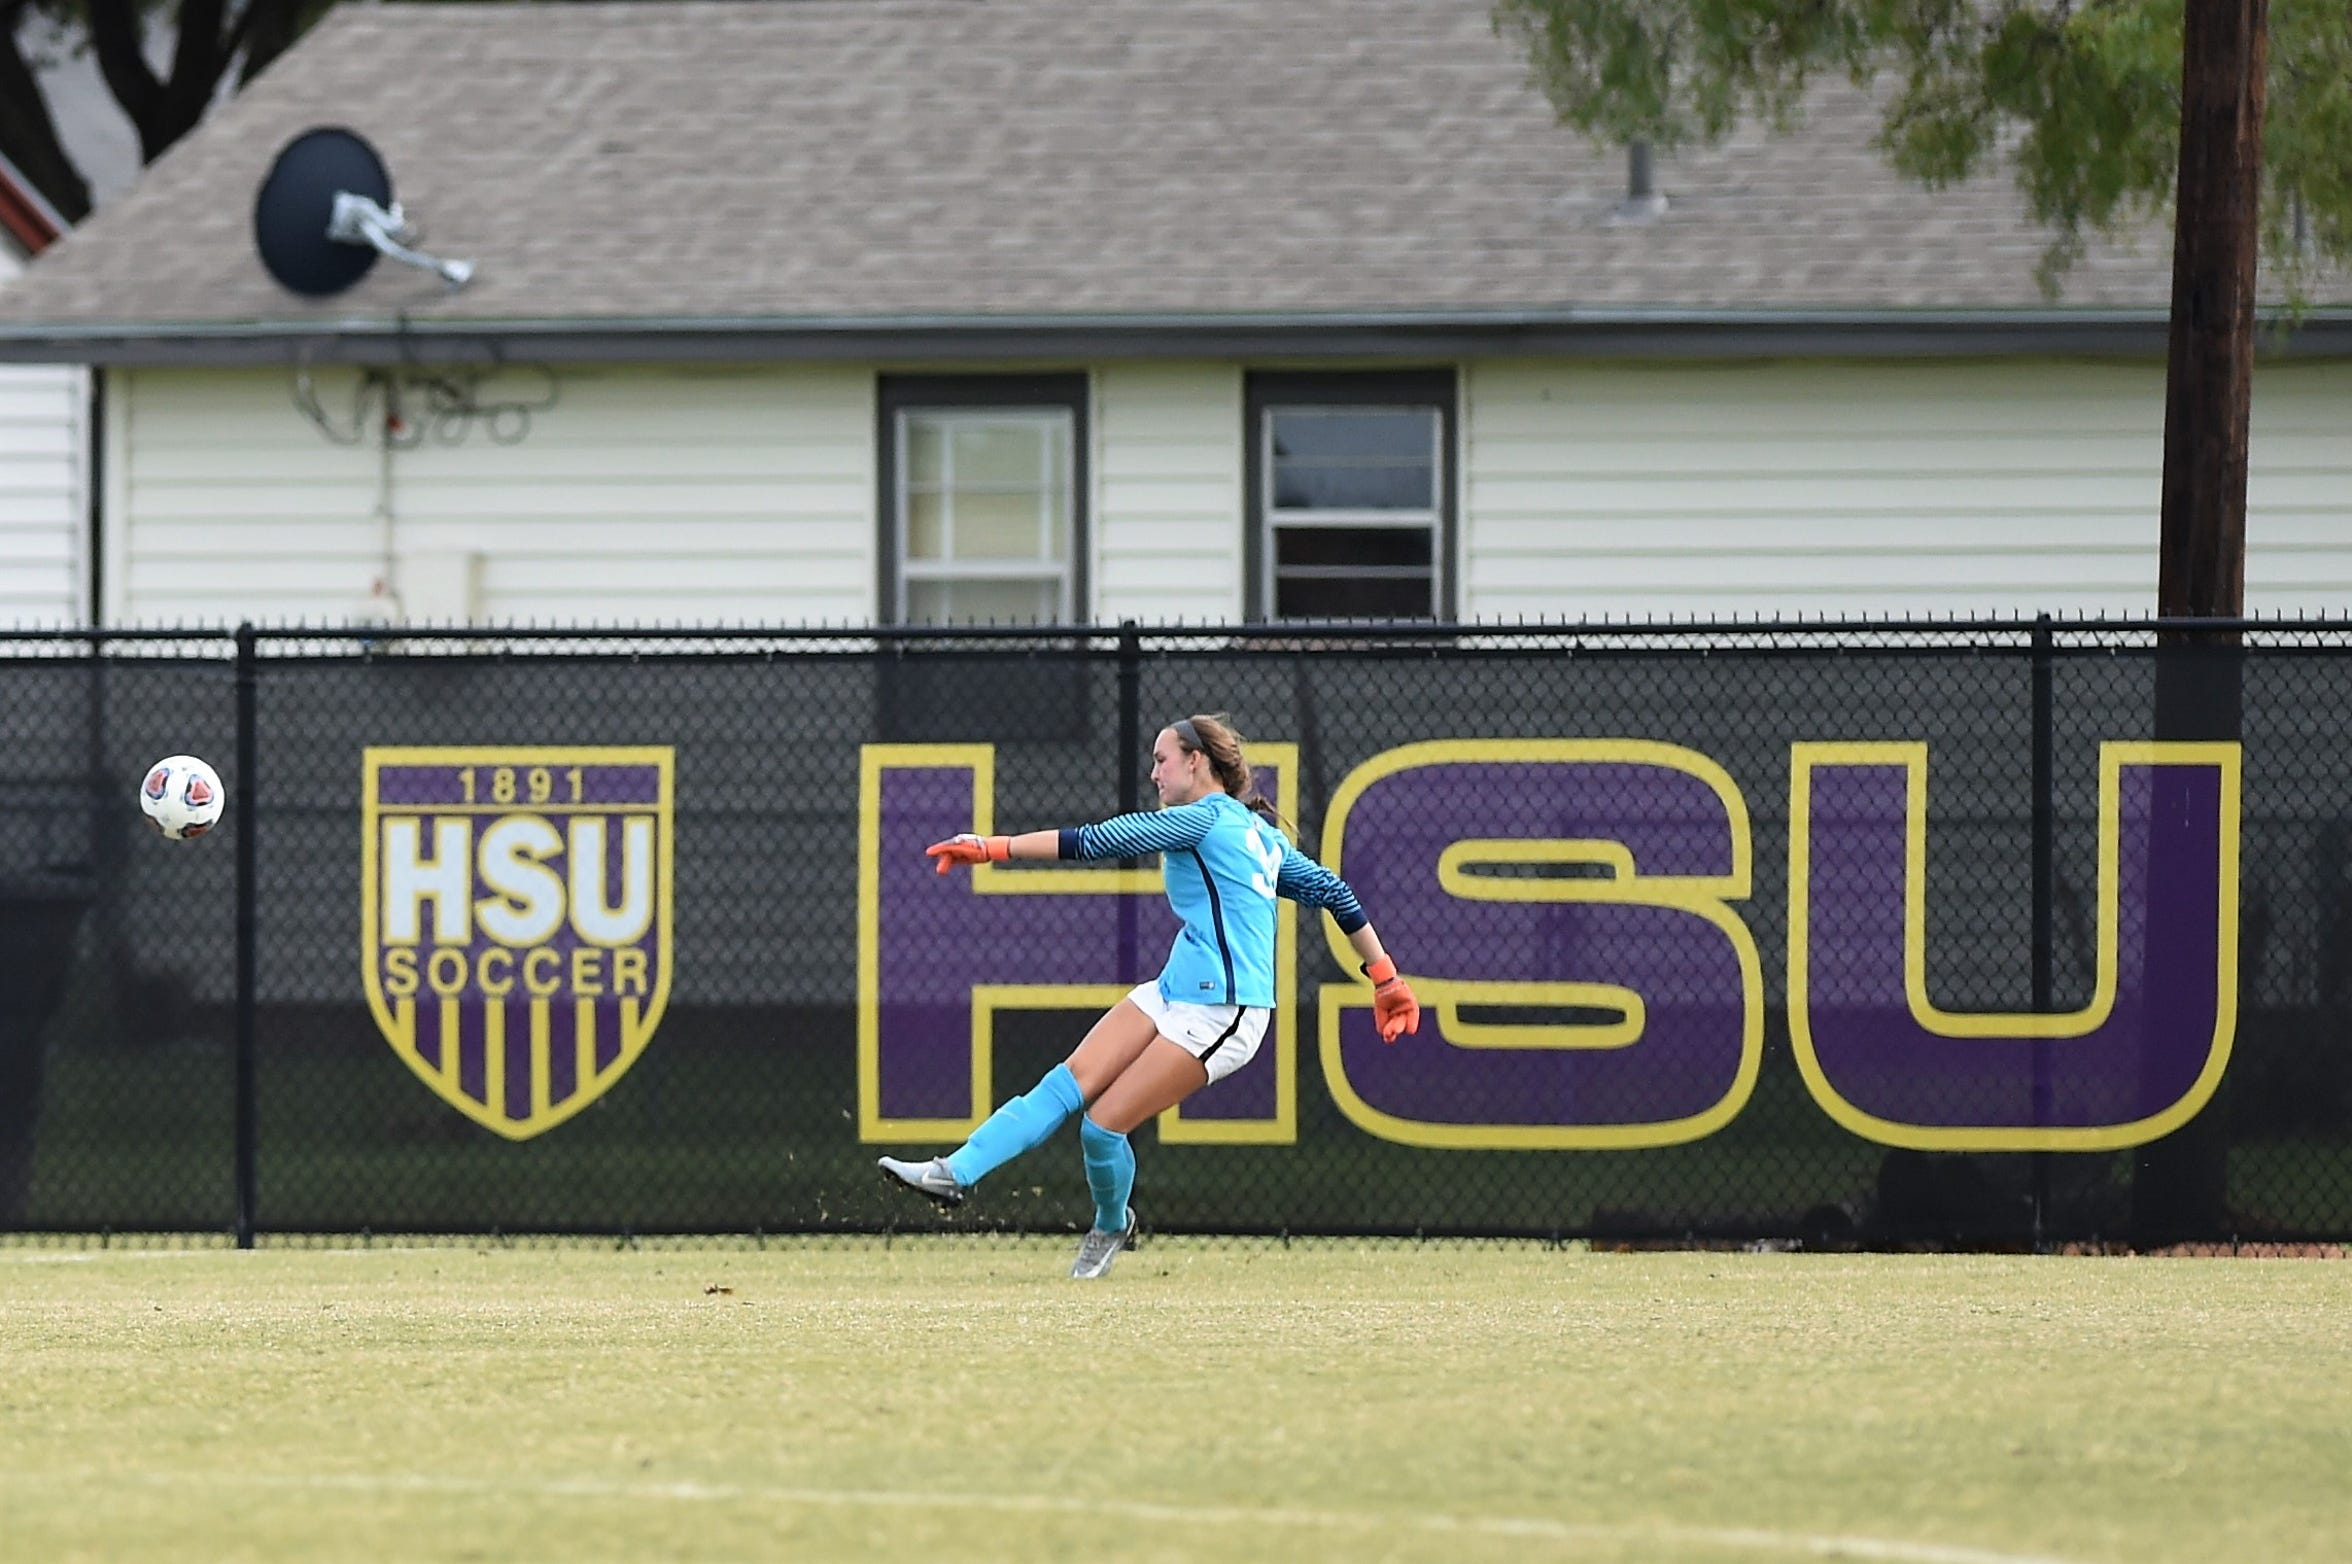 Hardin-Simmons goalkeeper Caitlin Christiansen takes a goal kick against Trinity during the second round of the NCAA Division III tournament. Christiansen has been a cornerstone of the Cowgirls defense during her career.